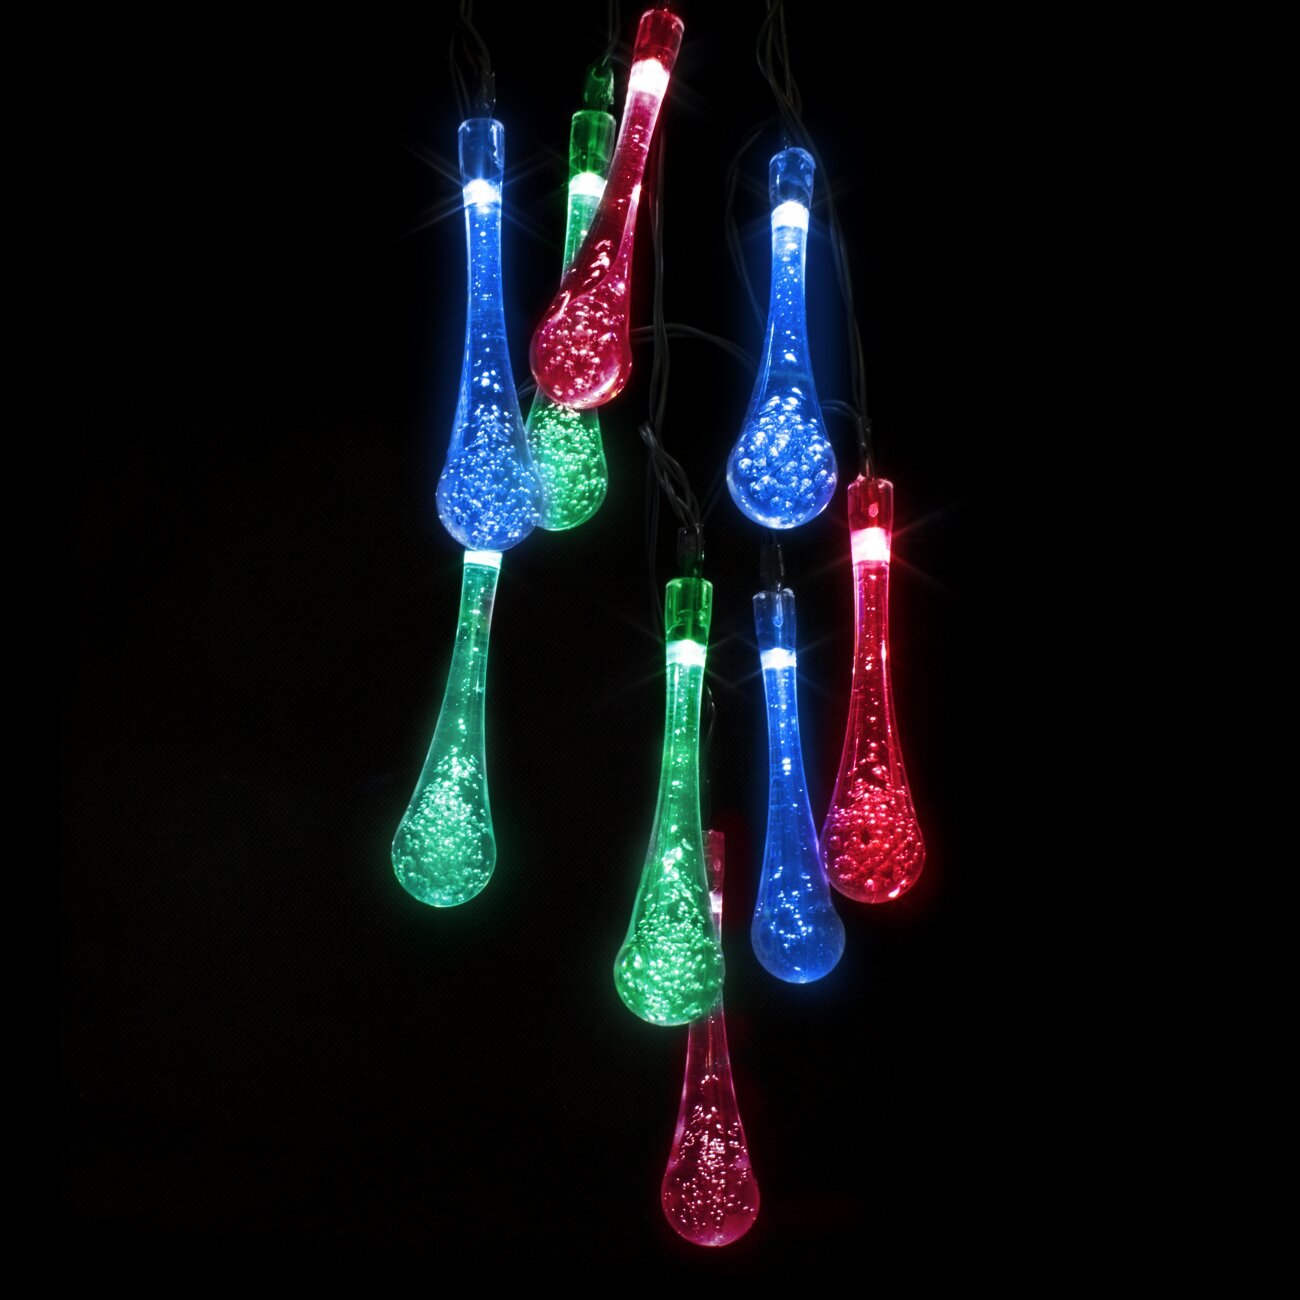 String Christmas Lights From Top Or Bottom : LED Concepts Solar LED Water Drop String Christmas Light & Reviews Wayfair